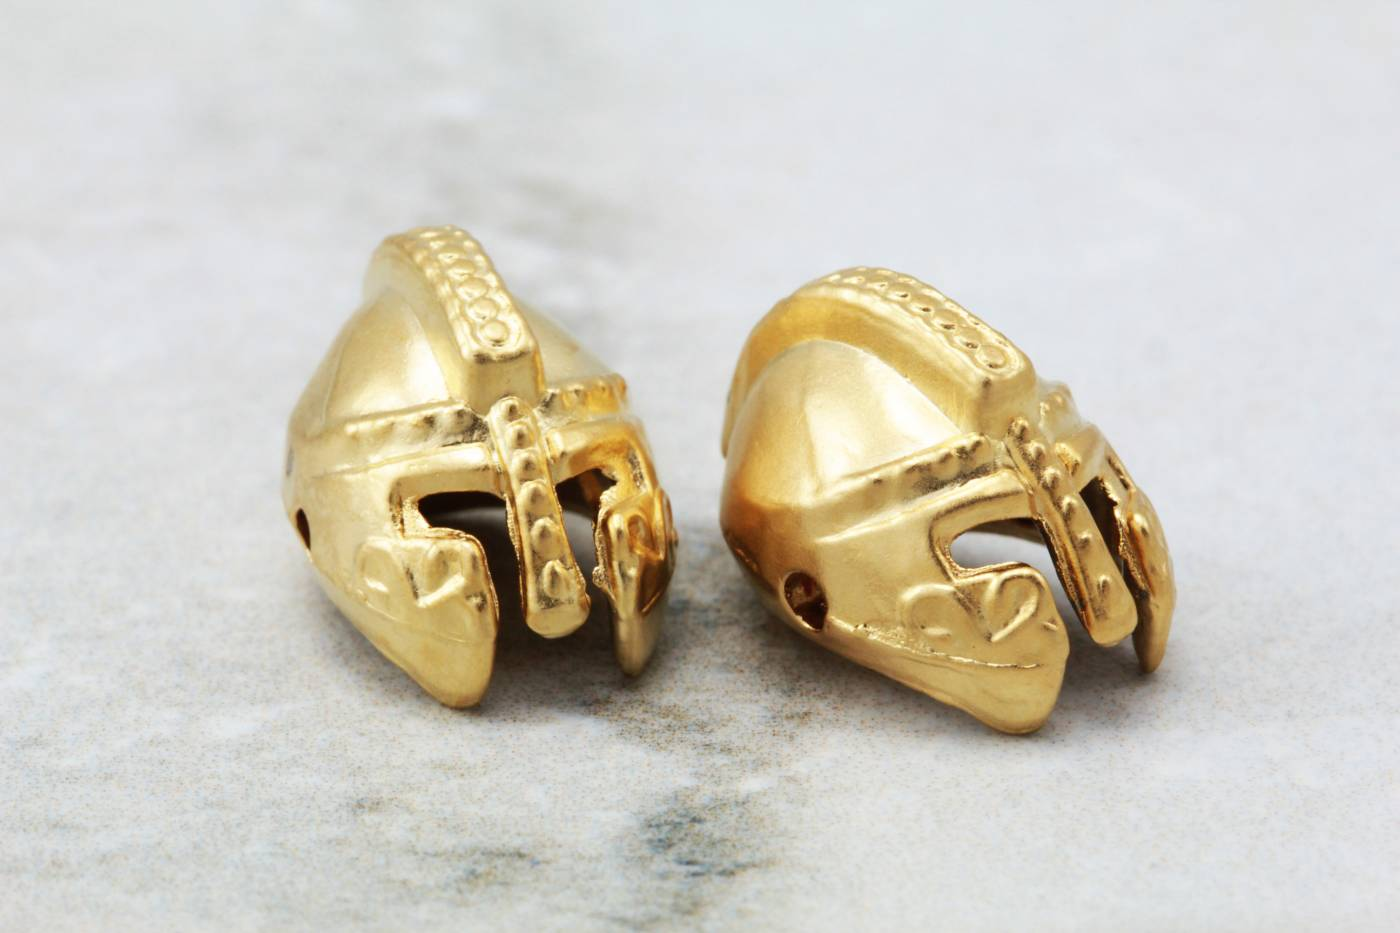 gold-plated-gladiator-helmet-charms.jpg